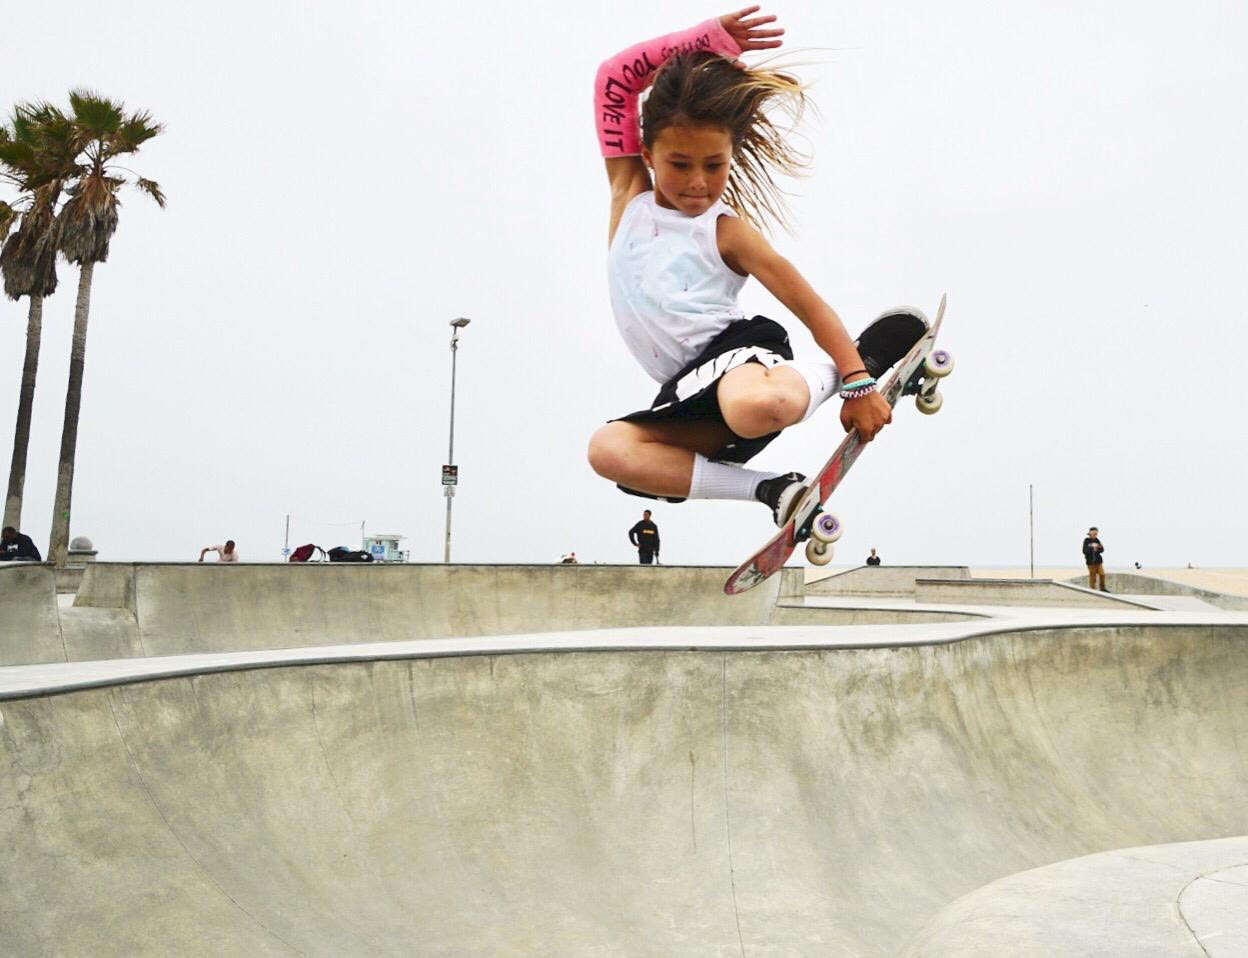 """Eleven-year-old Olympic skateboard hopeful """"lucky to be alive"""" after horrific injury"""